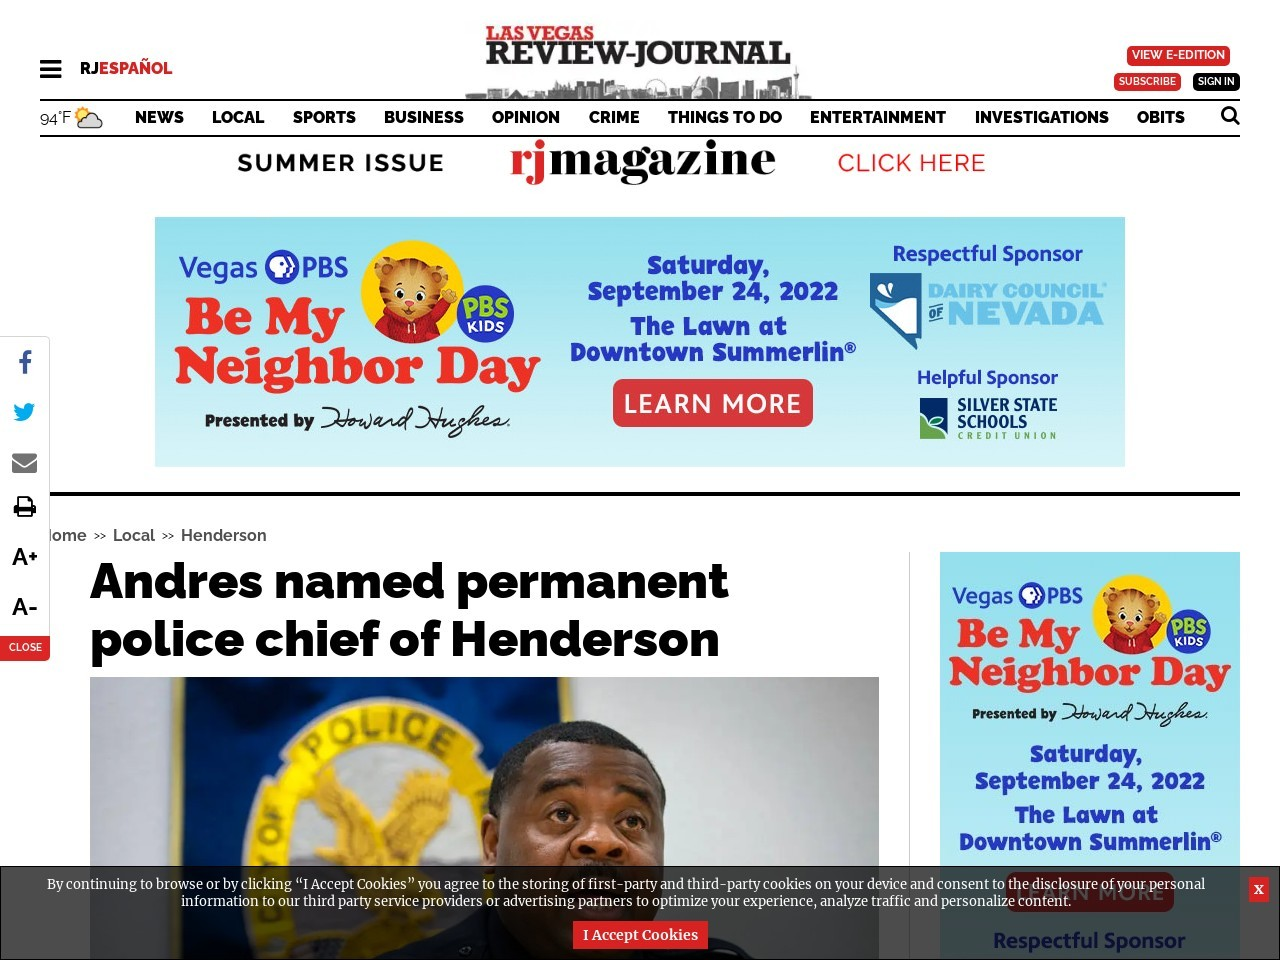 Andres named permanent police chief of Henderson